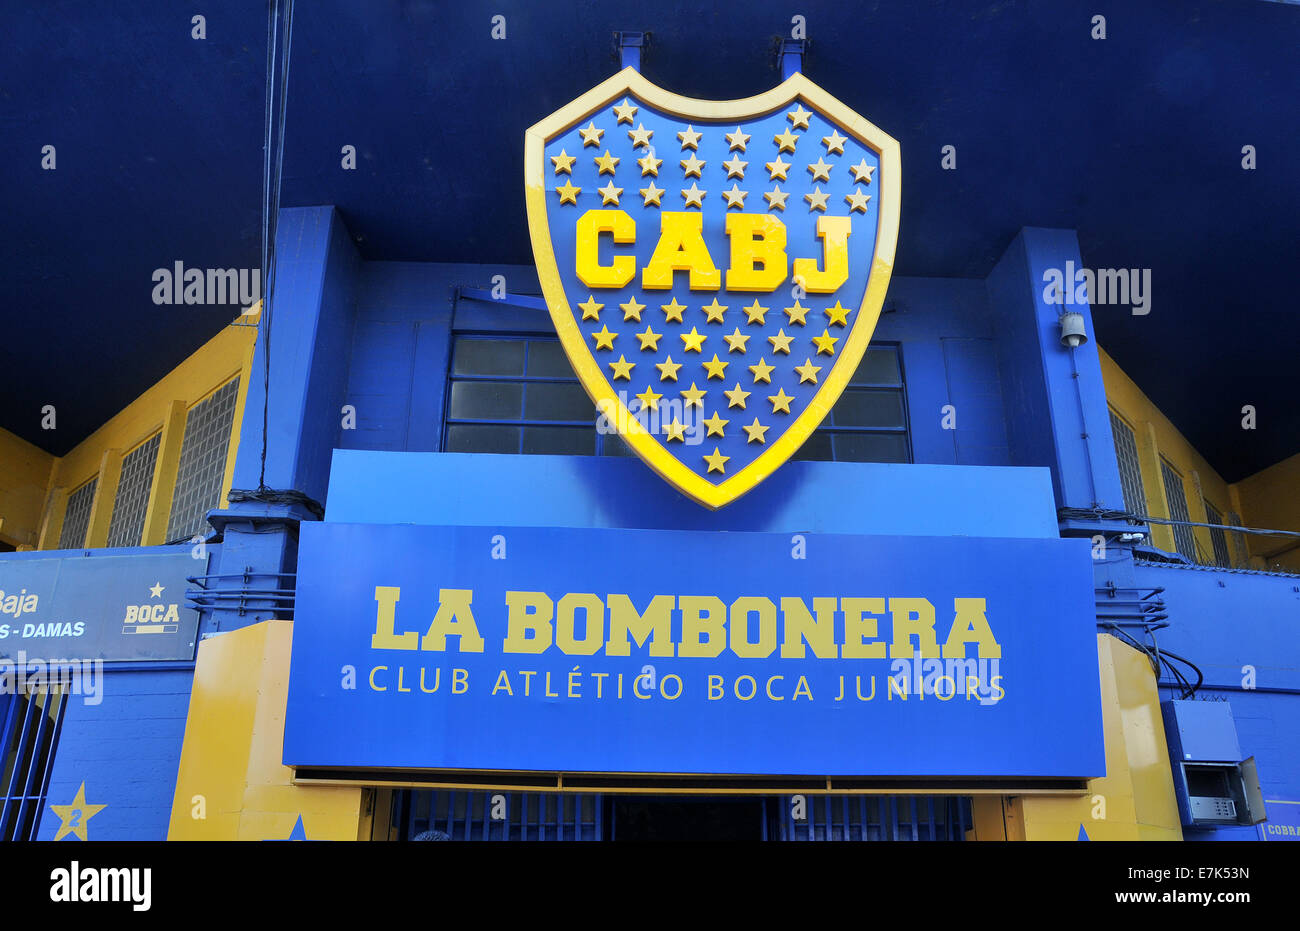 Boca Juniors: Bombonera Stock Photos & Bombonera Stock Images